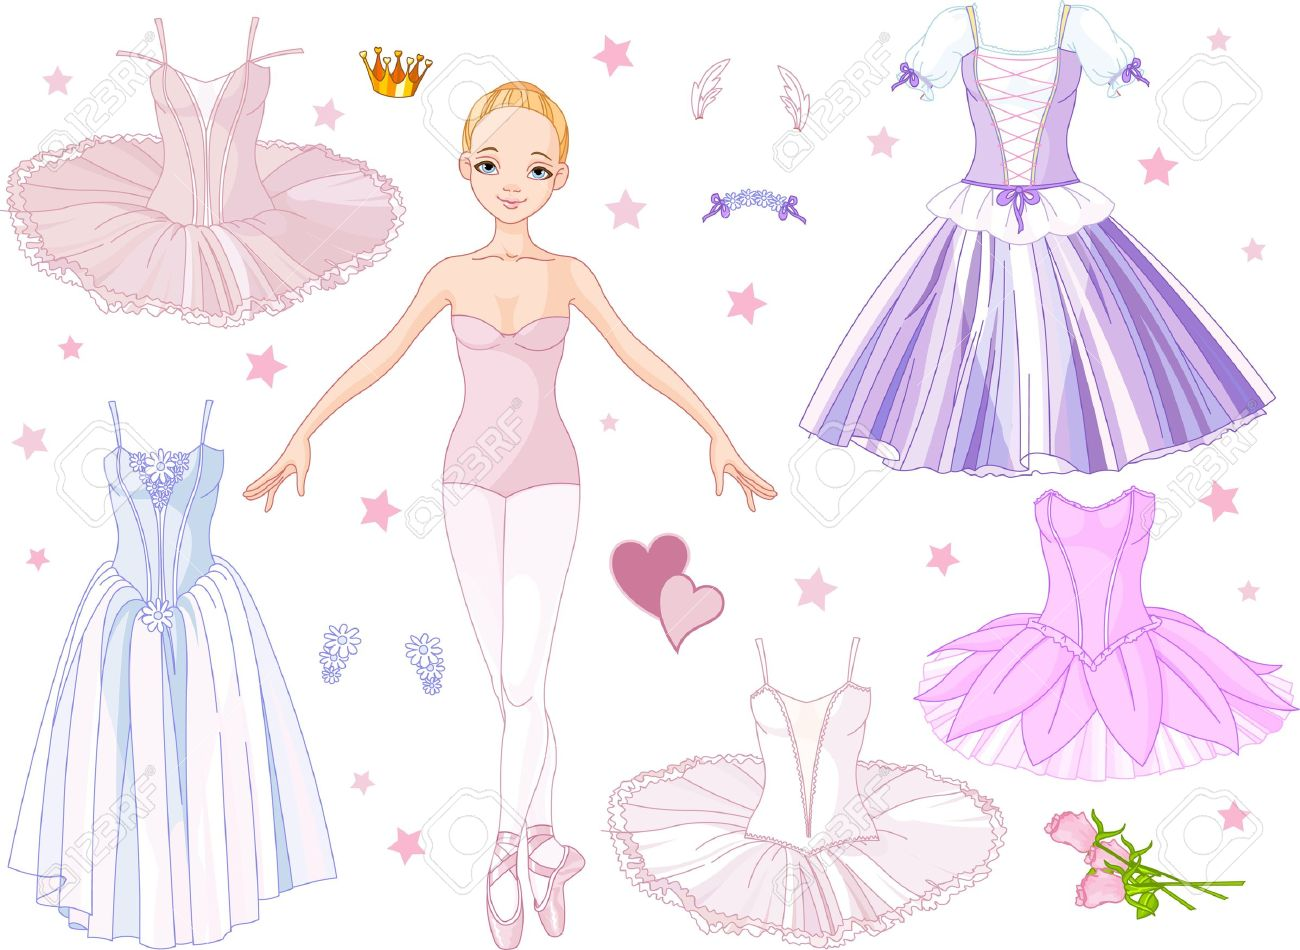 Paper Doll Dress 13850615 Paper Doll Ballerina With Different Costumes  Stock Vector Ballet Paper Doll Dress